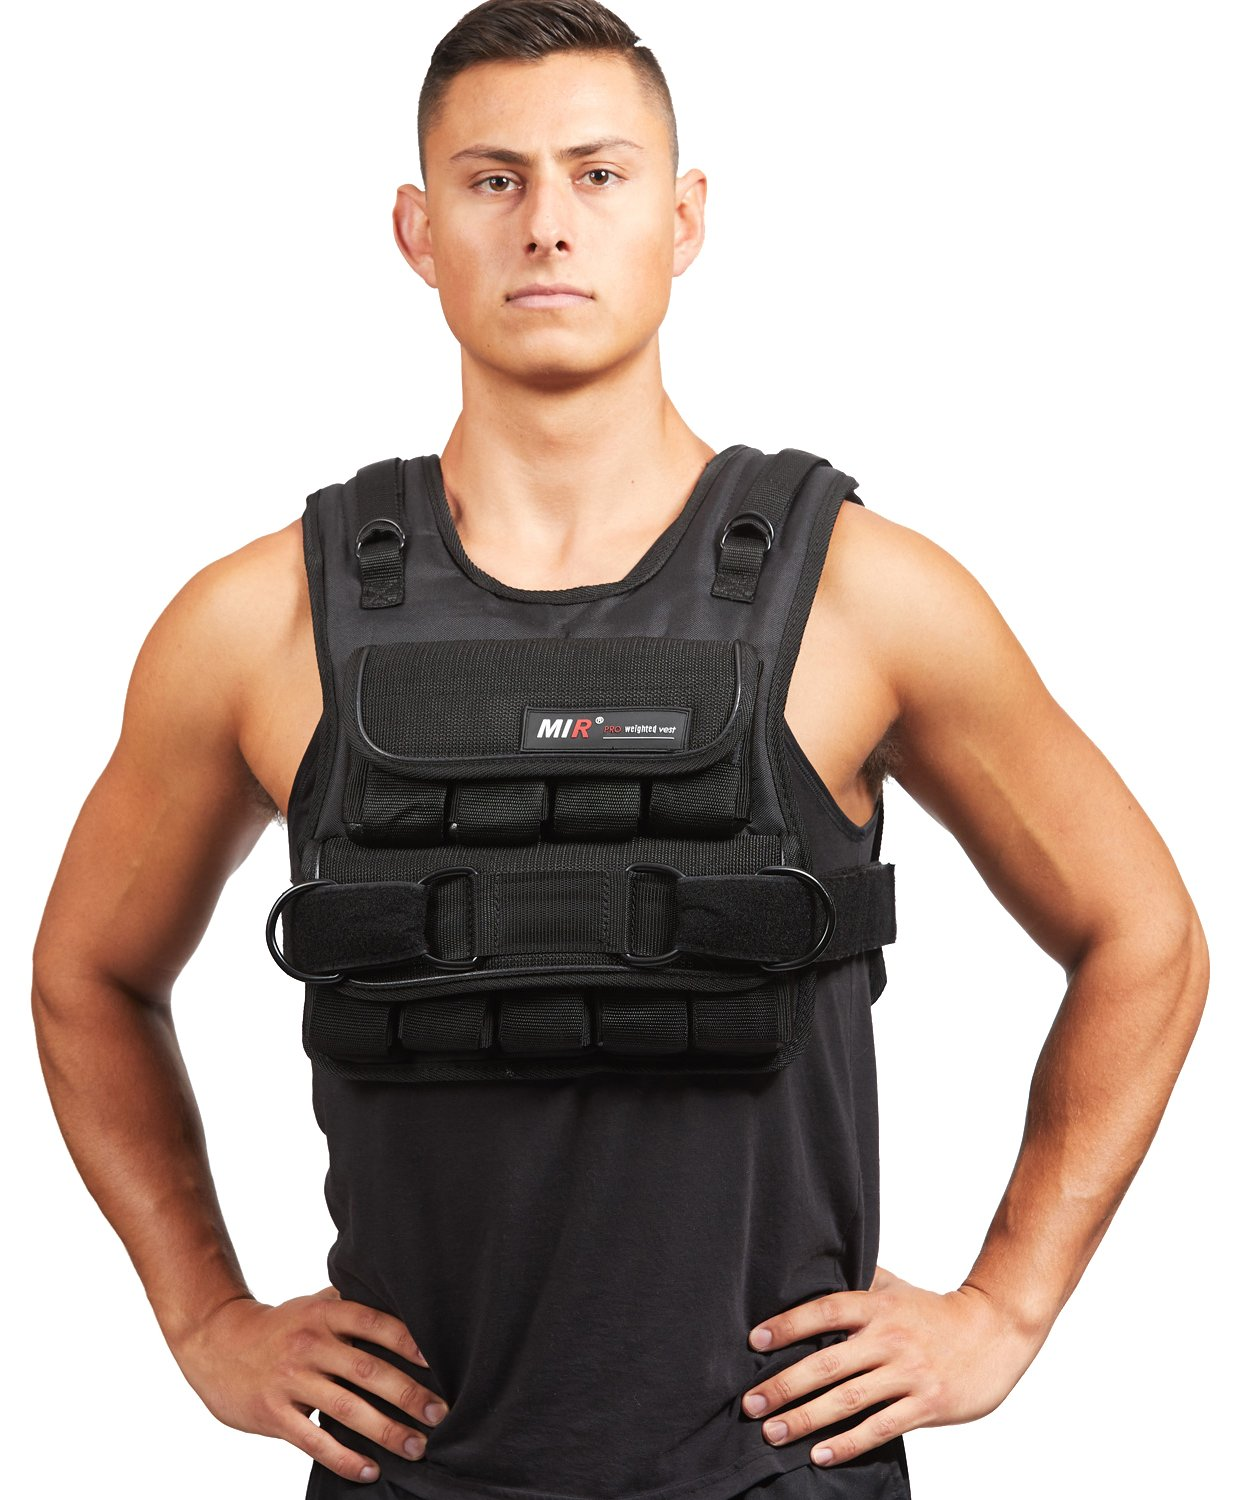 A Weighted Vest May Improve Balance A Weighted Vest May Improve Balance new picture